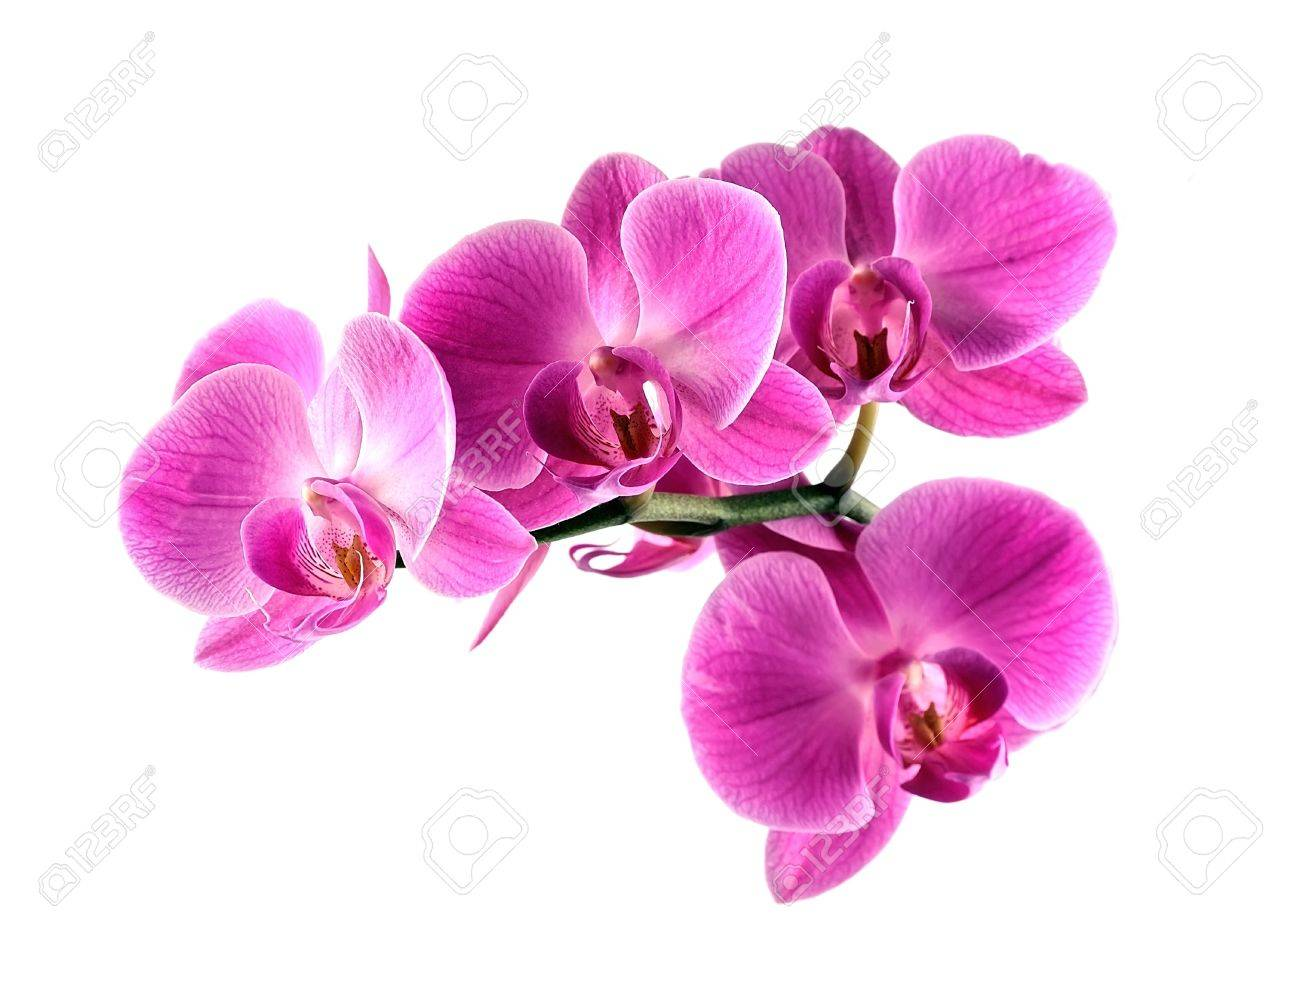 Pink Orchid Flower On White Backgrounds Stock Photo Picture And